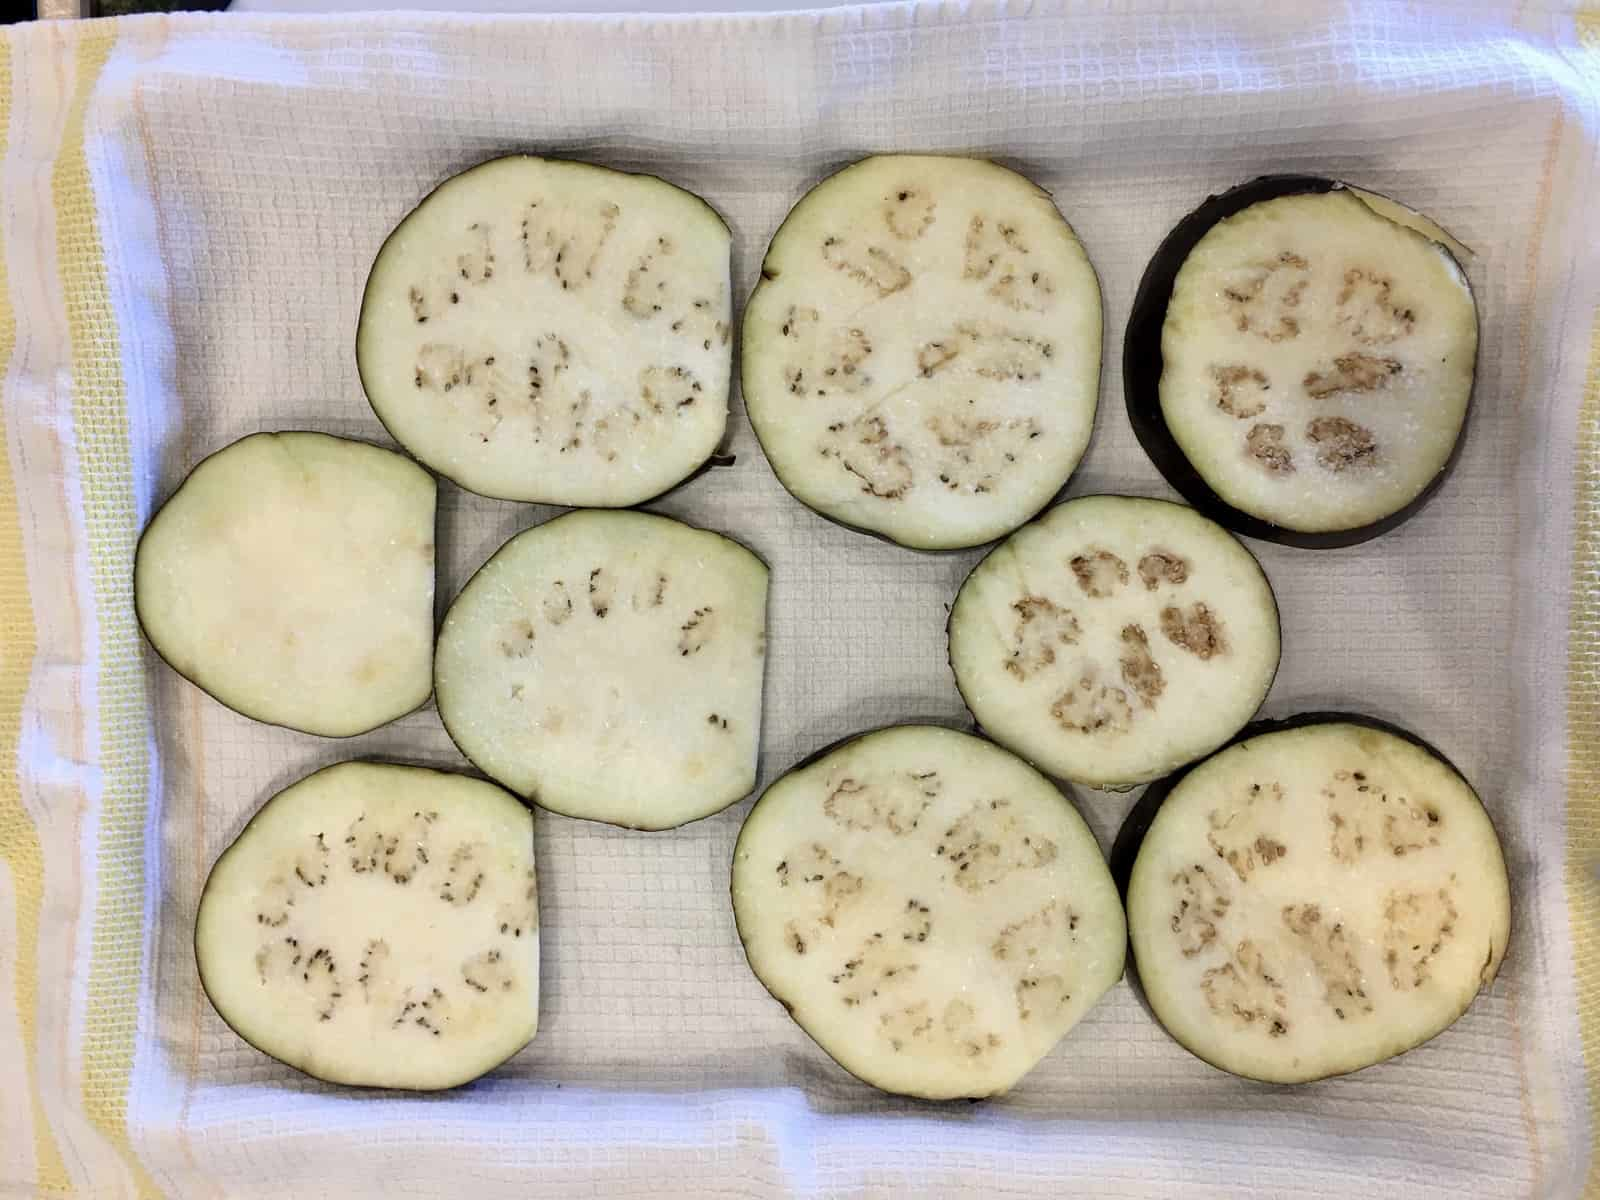 getting moisture out of the eggplant